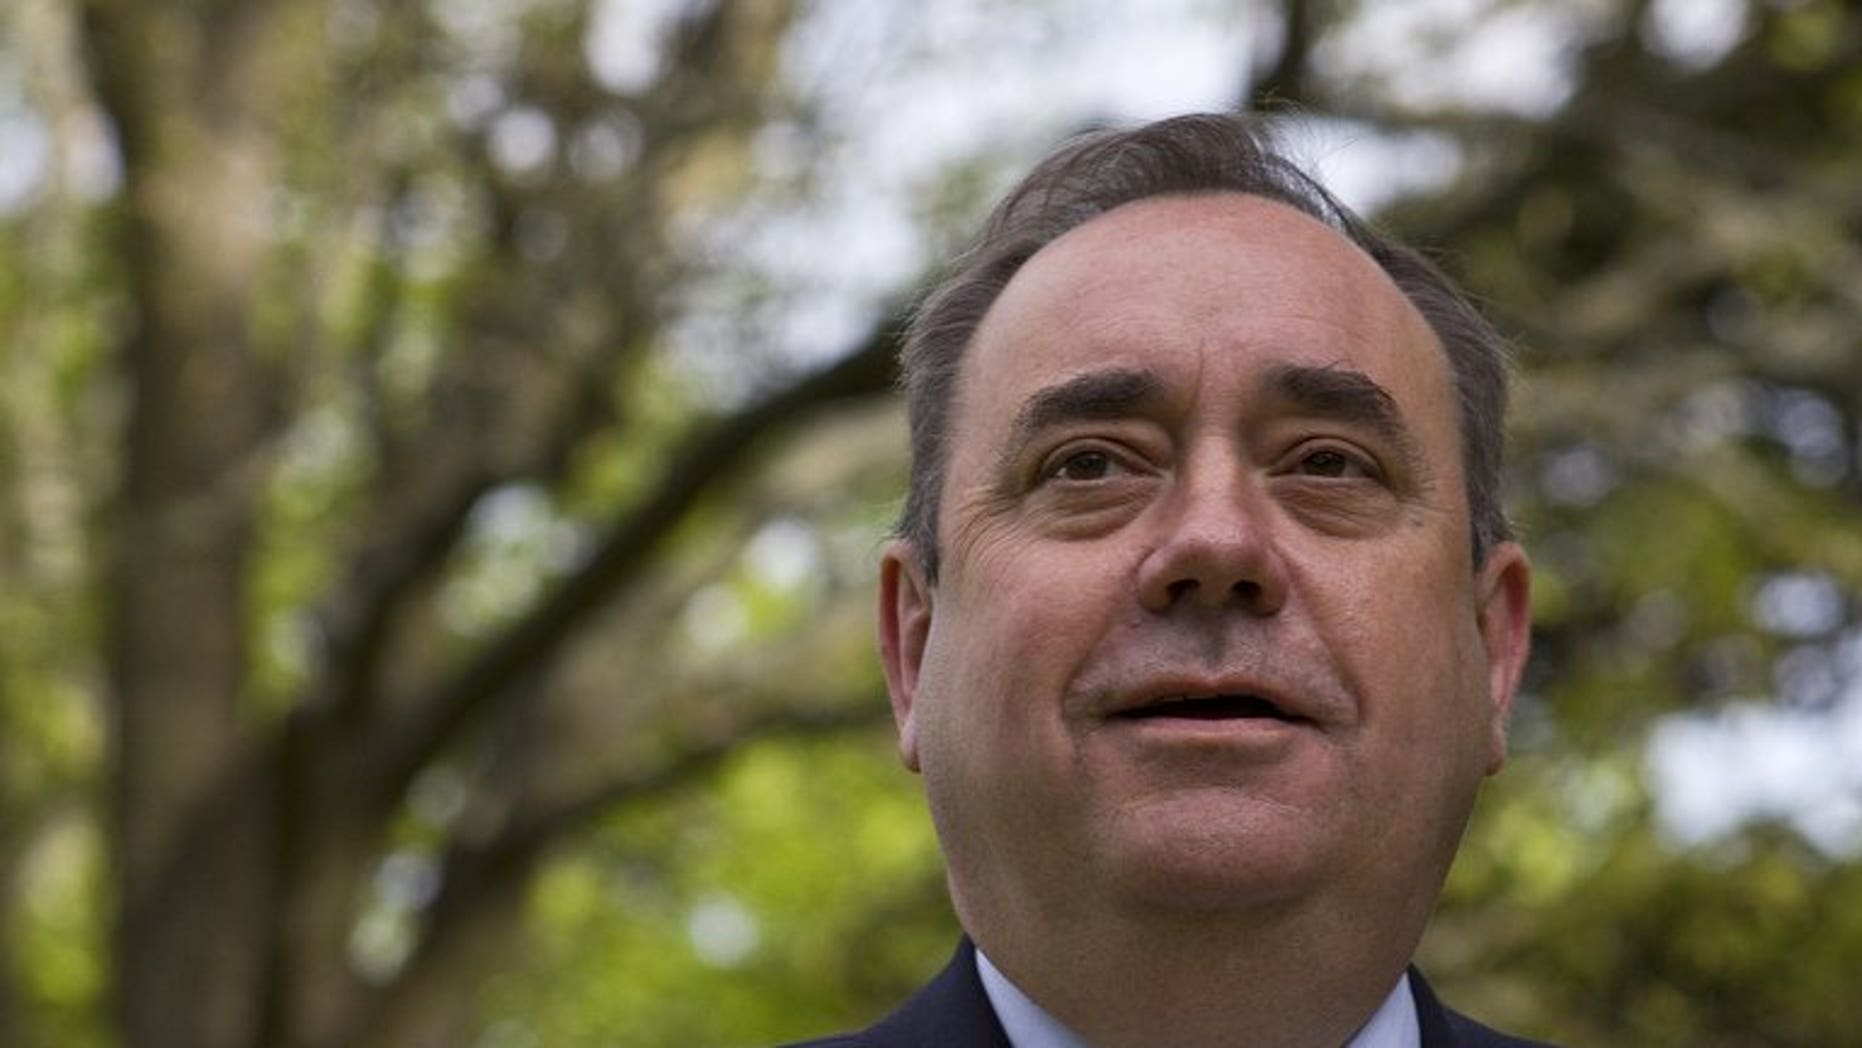 Scottish First Minister Alex Salmond, pictured in Edinburgh, Scotland, on May 6, 2011, has confirmed he will boycott next week's British Open over Muirfield's all-male membership policy.